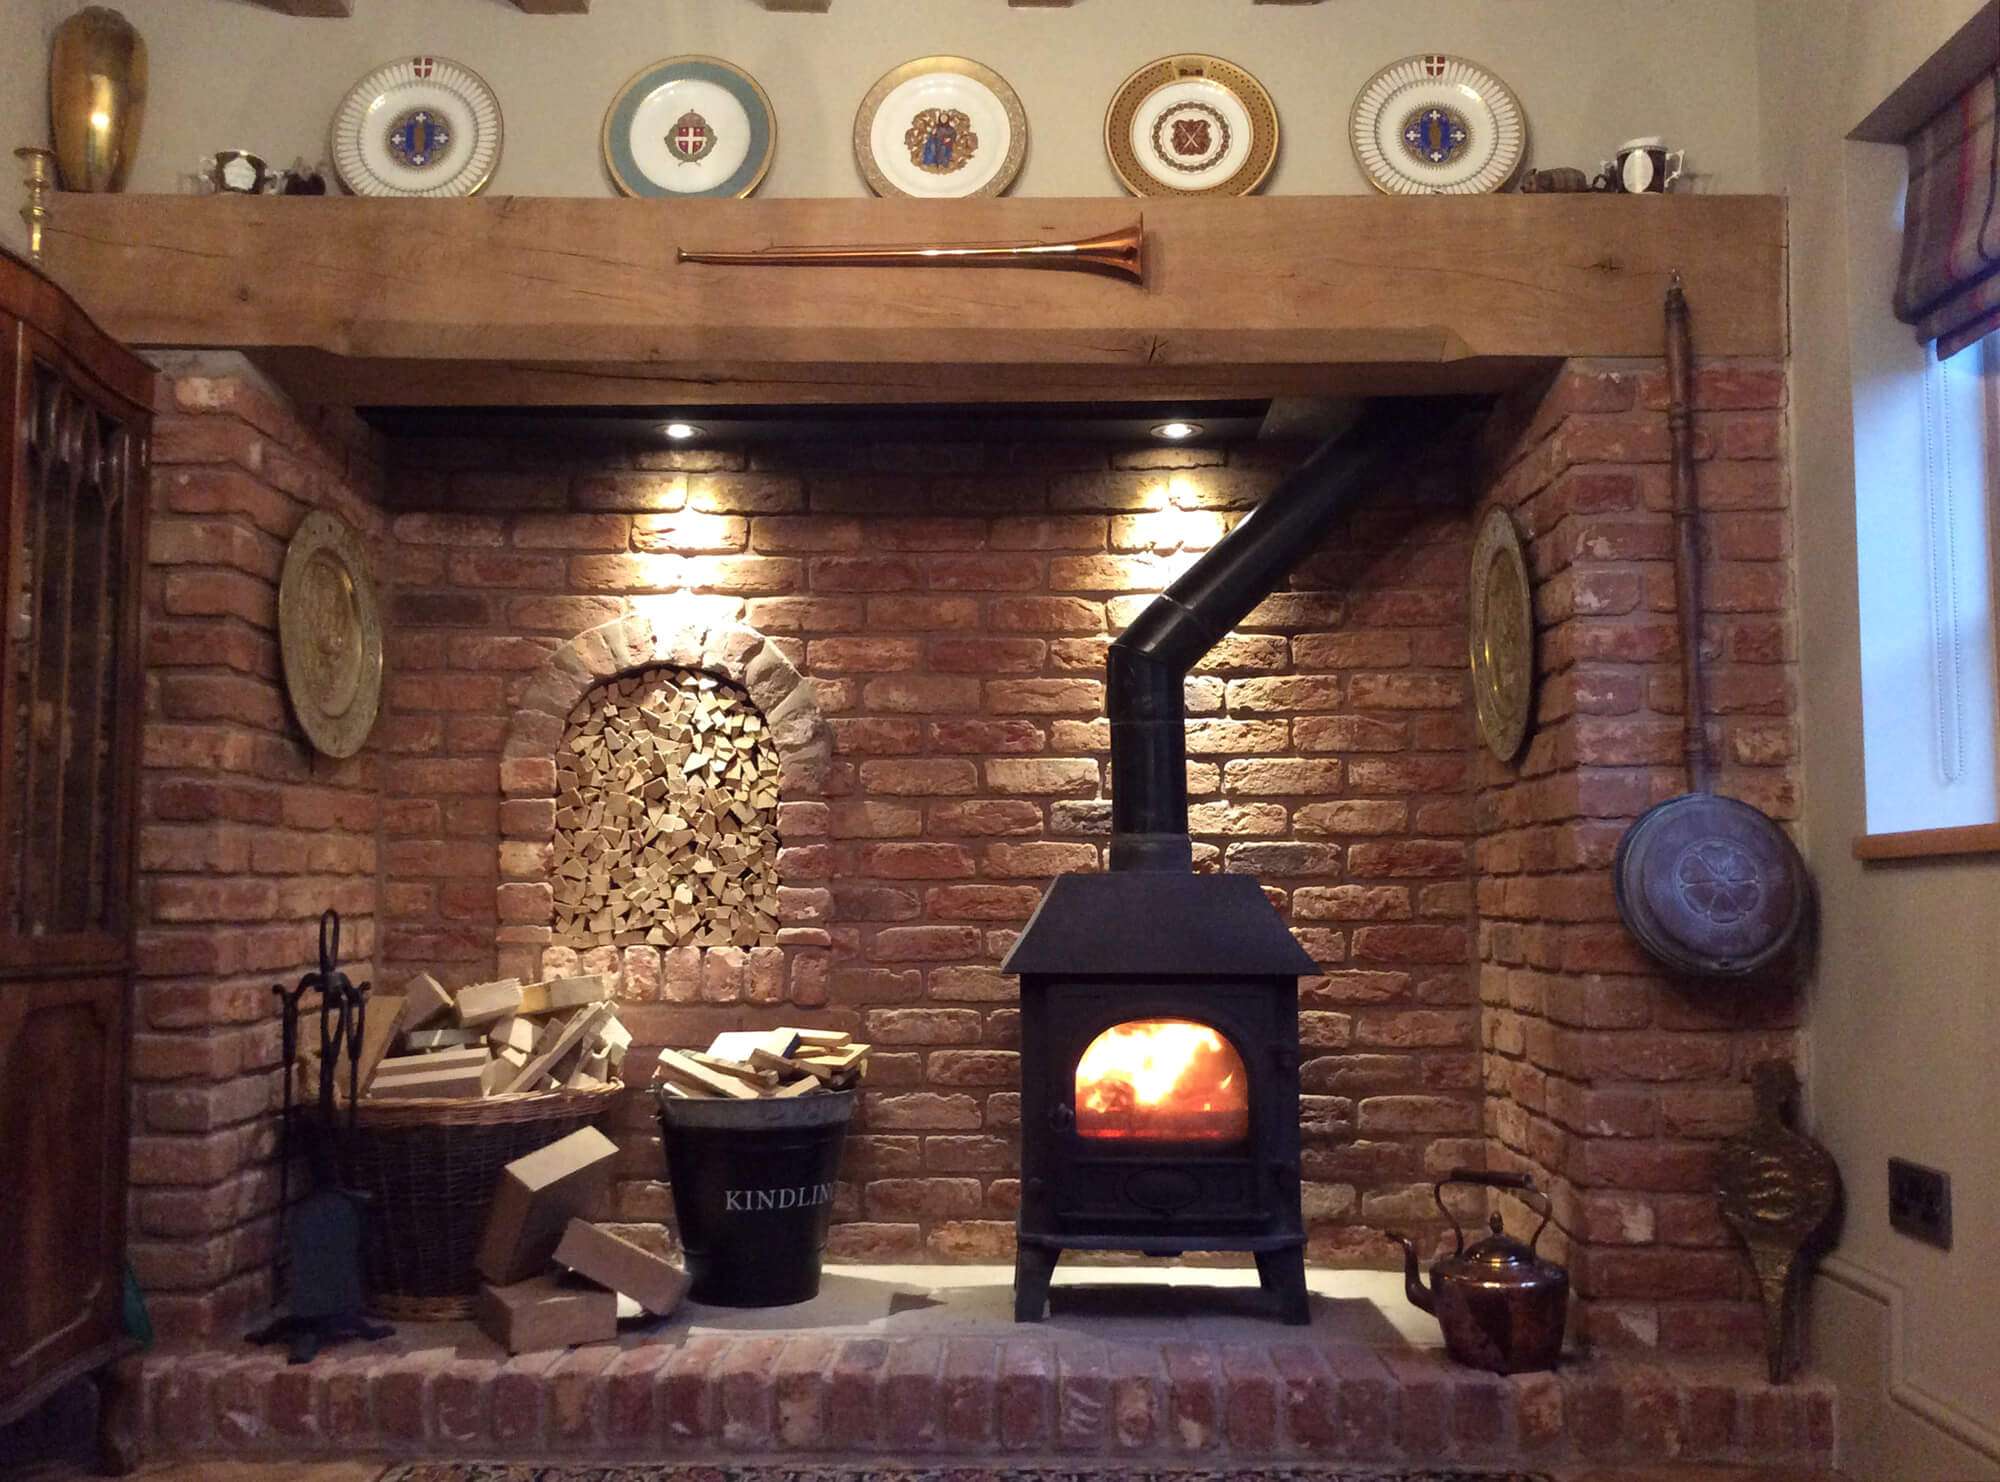 JLS Design & Build Joinery Manufacturer and Building Contractor in Coventry and Warwickshire Brick Fireplace